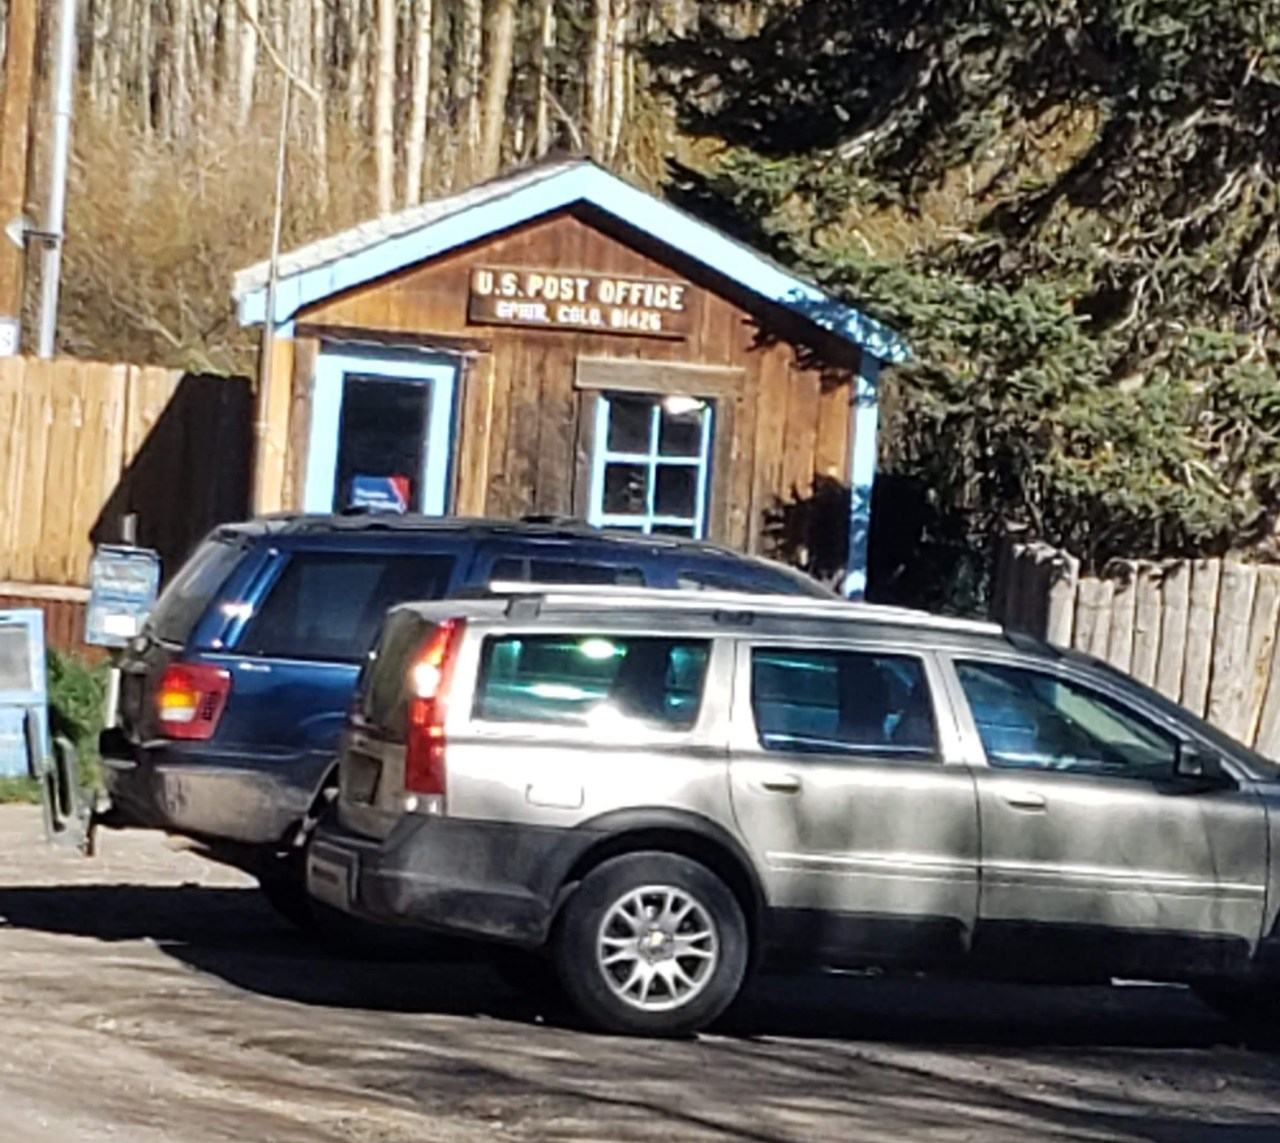 second smallest US postal office in Ophir